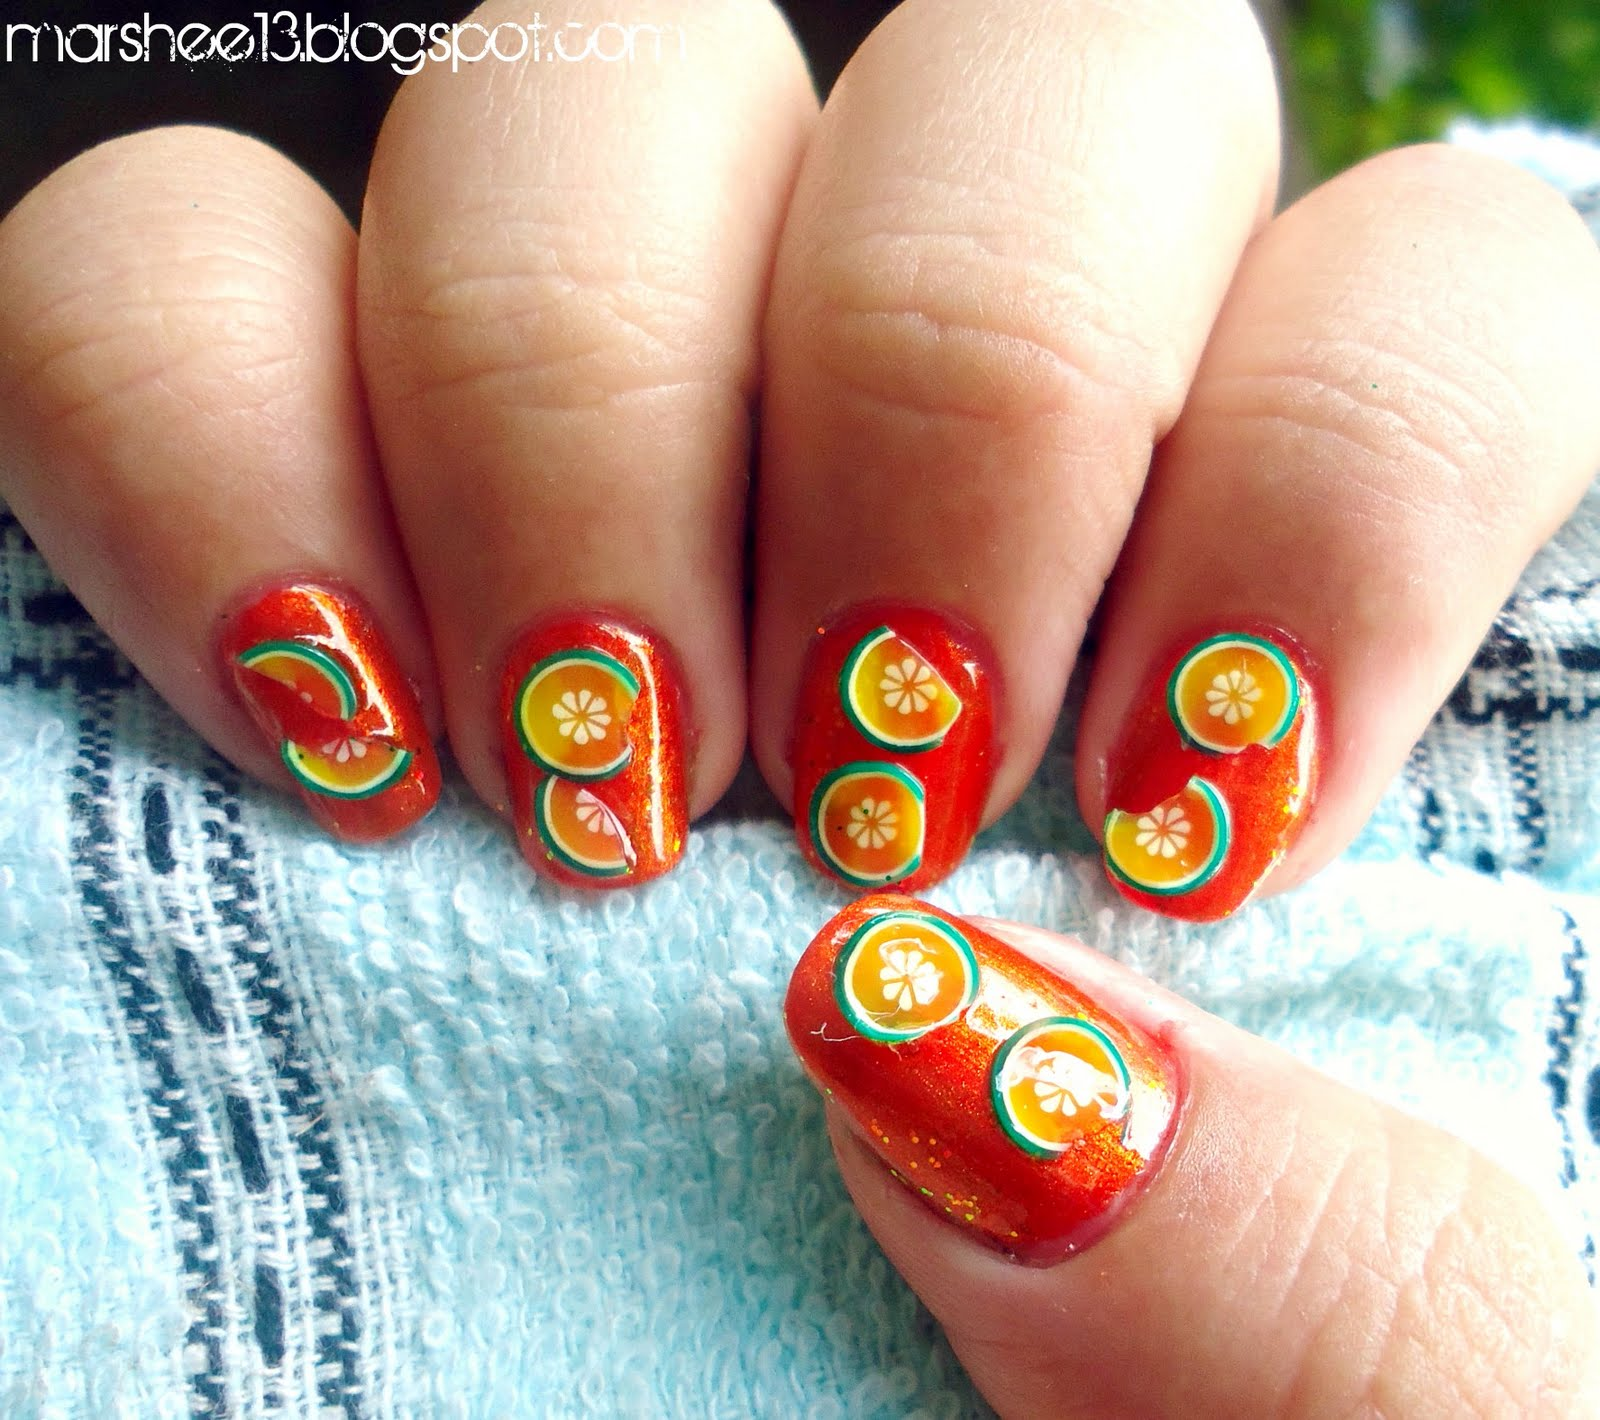 Prettyfulz Fall Nail Art Design 2011: Steve Jobs Store: Random Nail Designs -part2